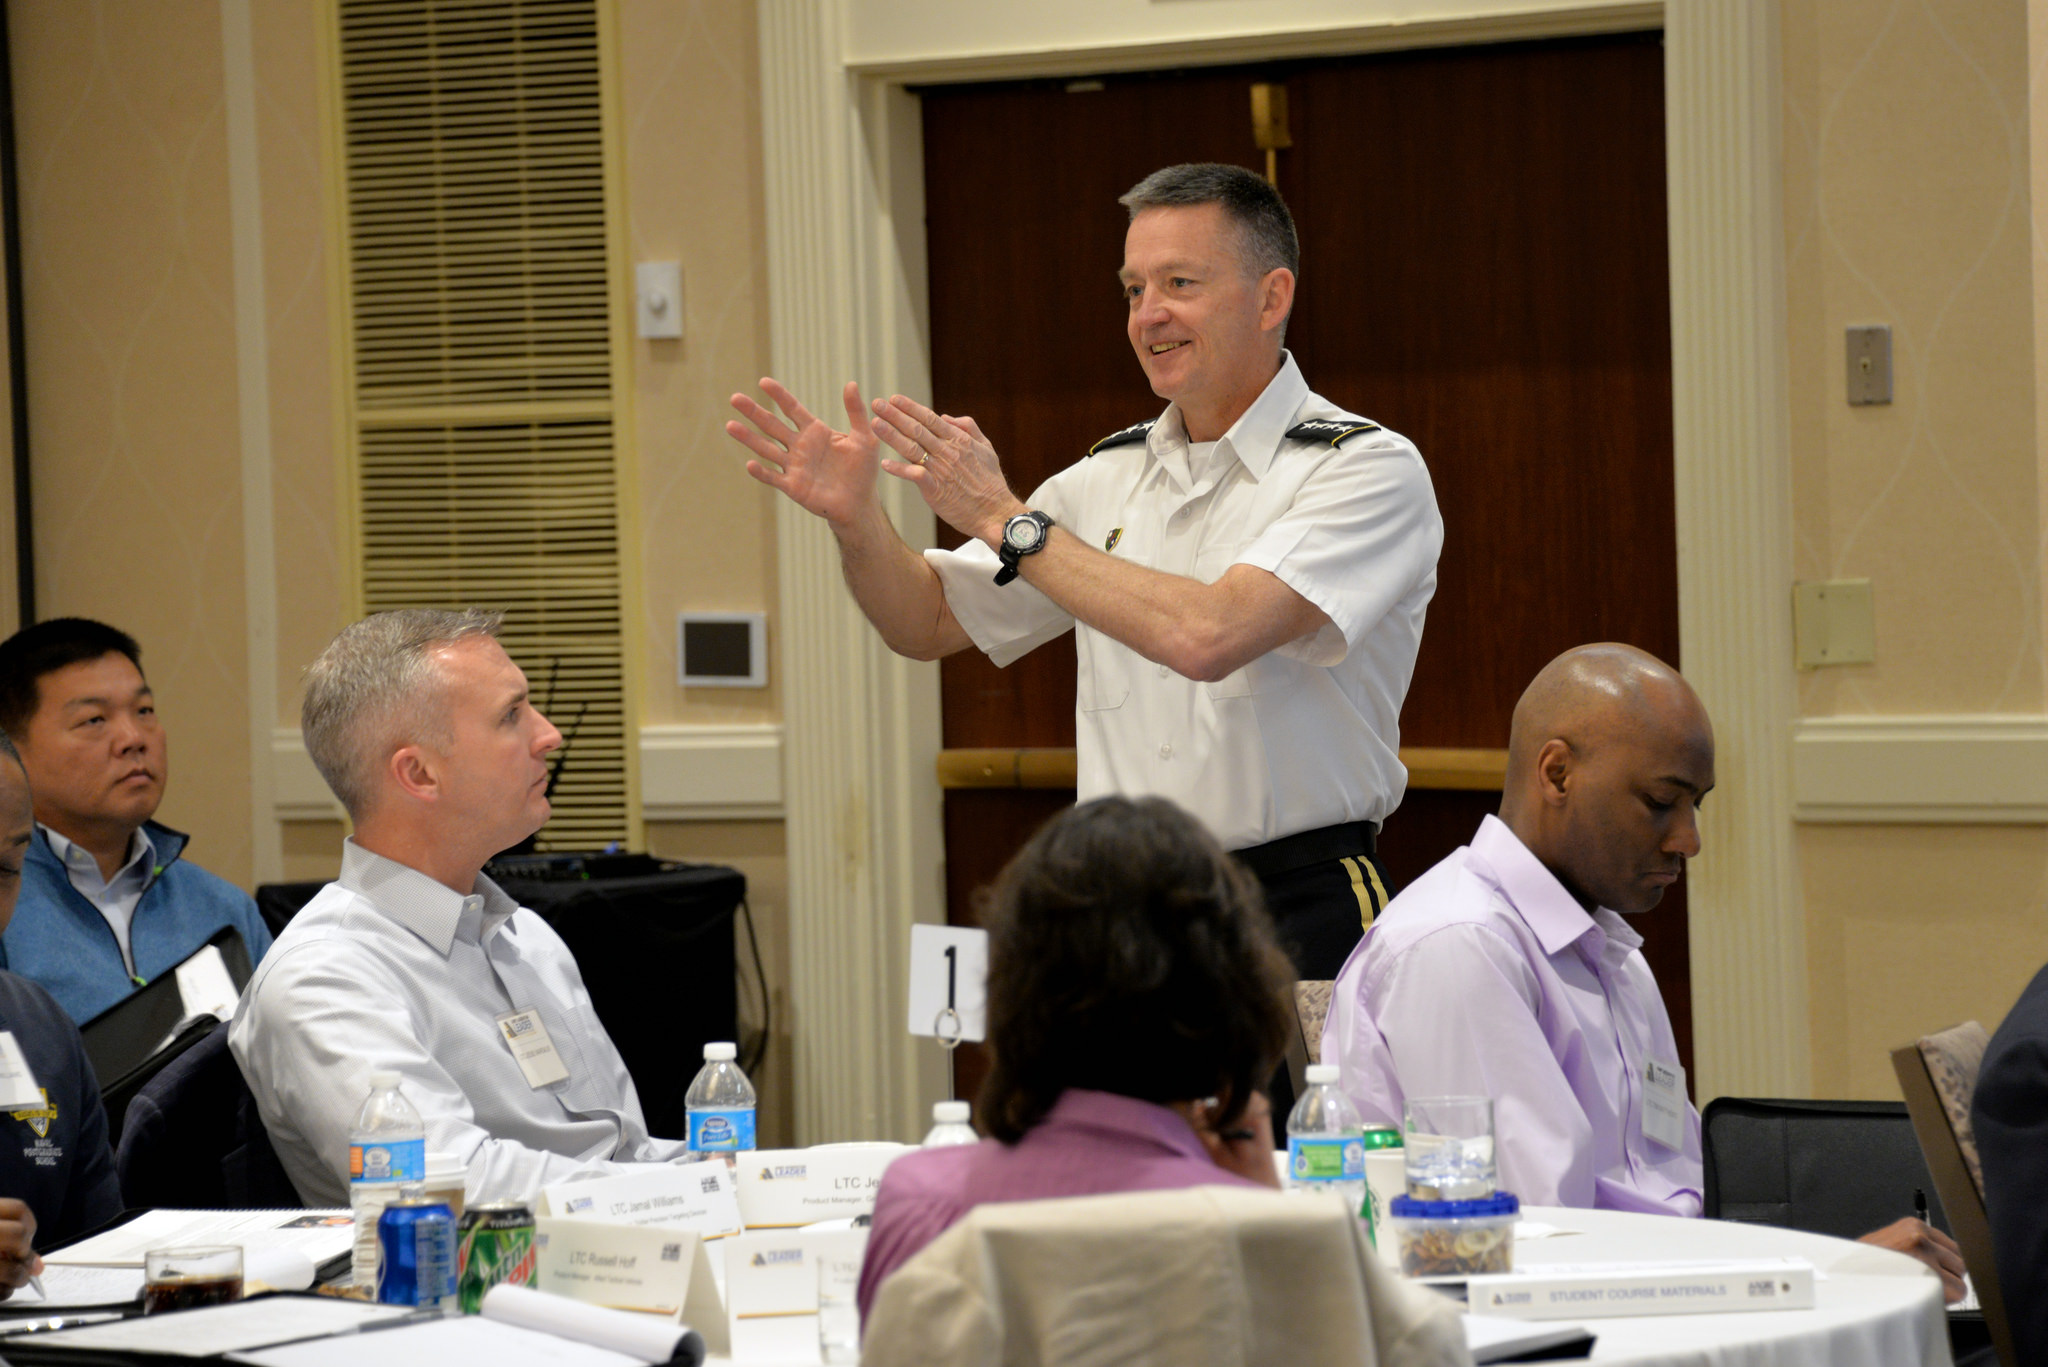 Gen. Daniel Allyn, the Army's vice chief of staff, answers students' questions about their upcoming positions during the AALPC.